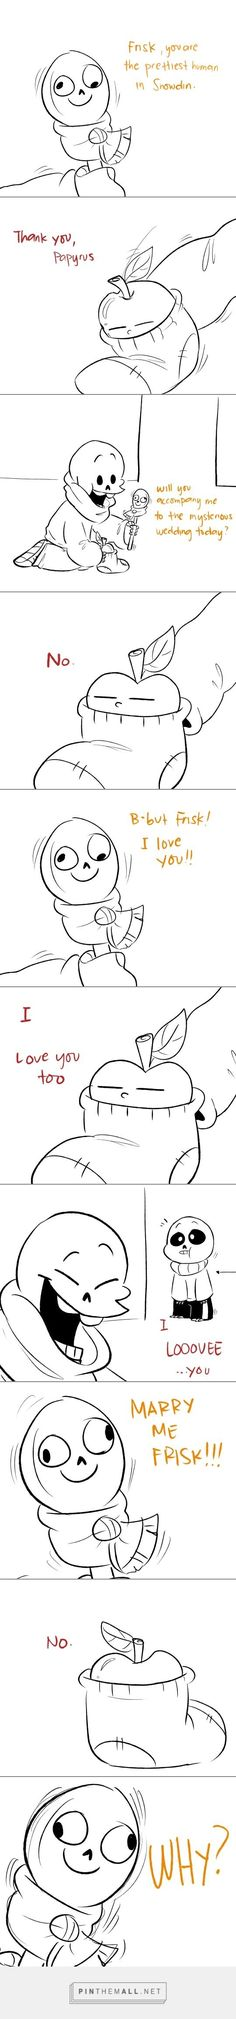 Undertale comic, Theatre of Papyrus, part 1 - created via https://pinthemall.net